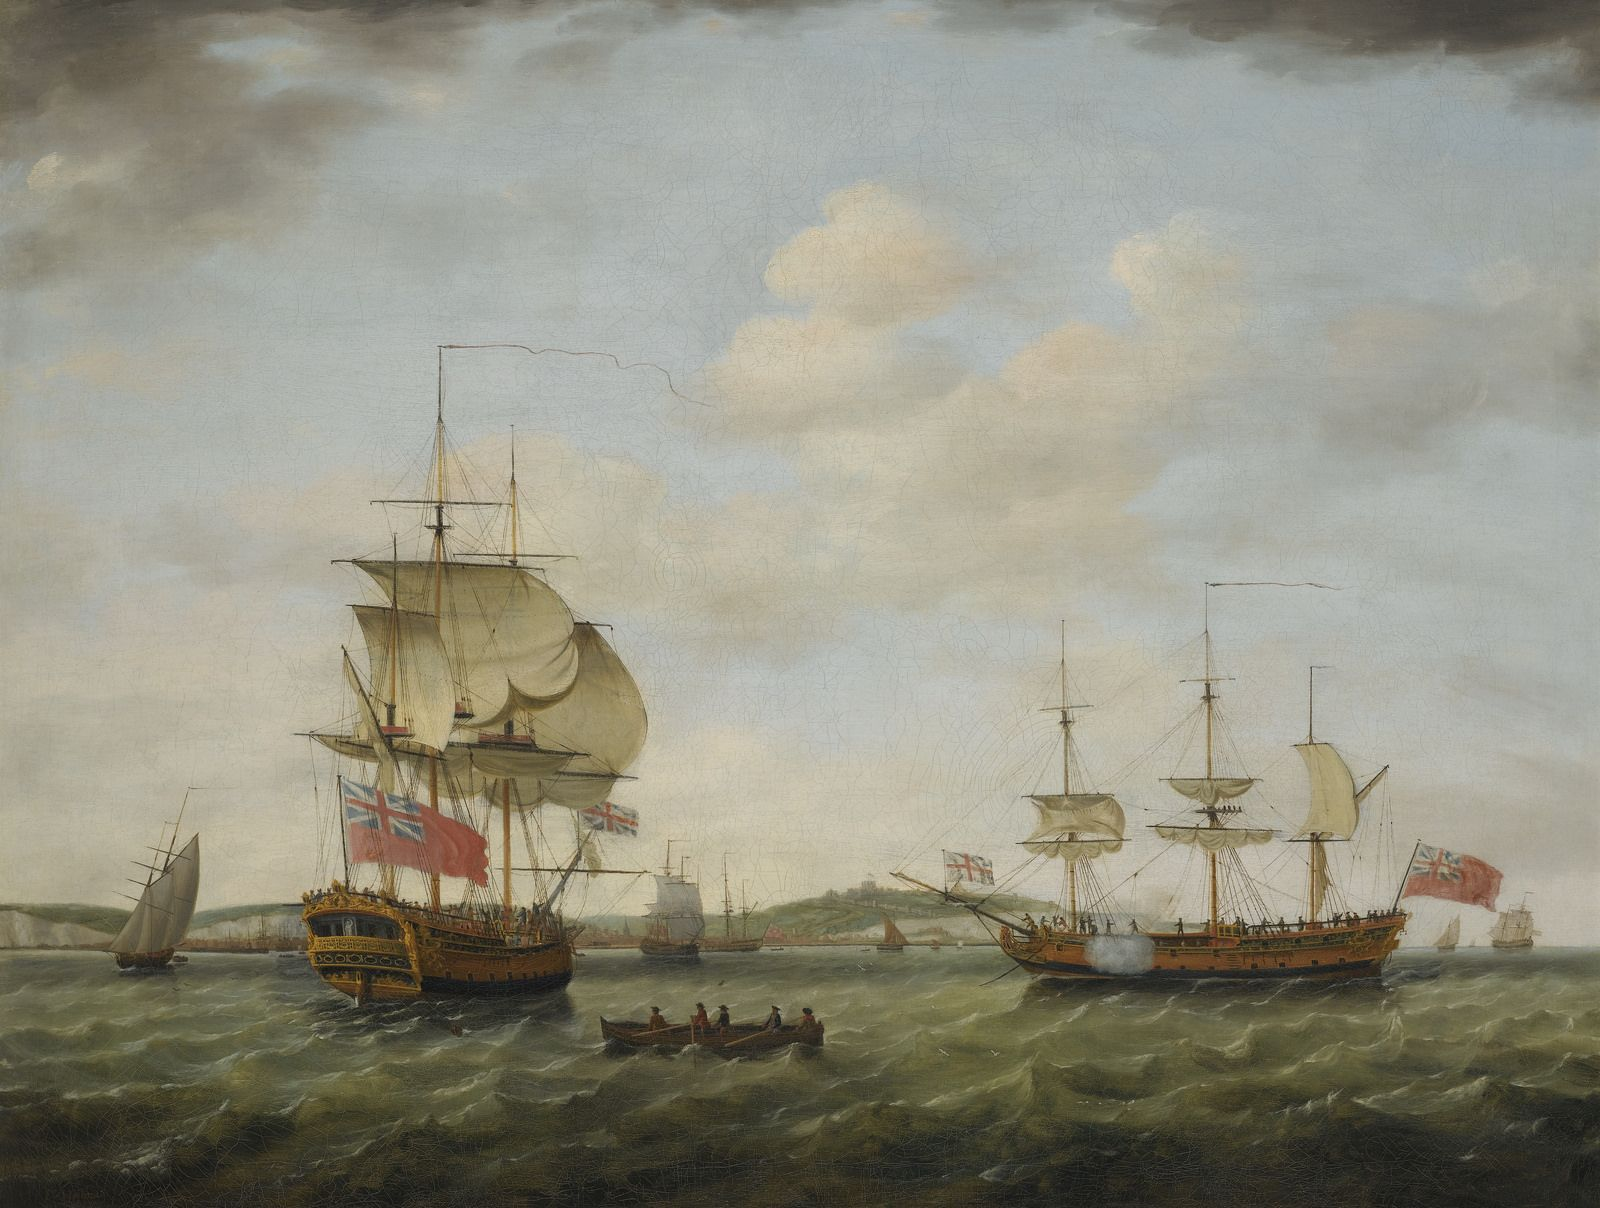 A british sixth rate man of war off Dover, in two positions, 1777 FRANCIS HOLMAN RAMSGATE 1729 - 1784 WAPPING signed and dated l.l.: F. Holman / 1777 oil on canvas 98 by 128.5 cm.; 38 1/2 by 50 1/2 in.